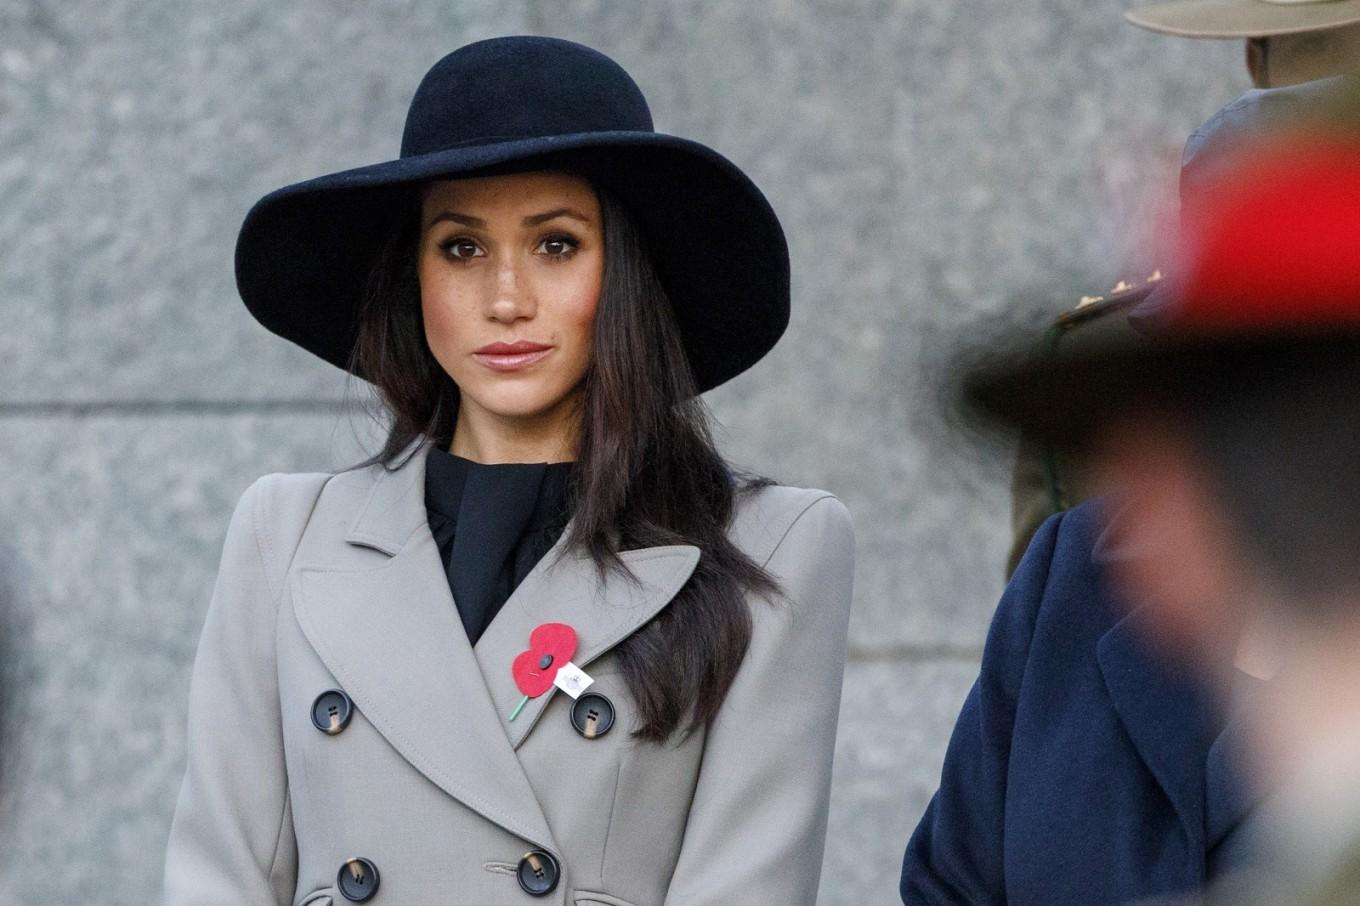 Meghan Markle's father not attending royal wedding: Report